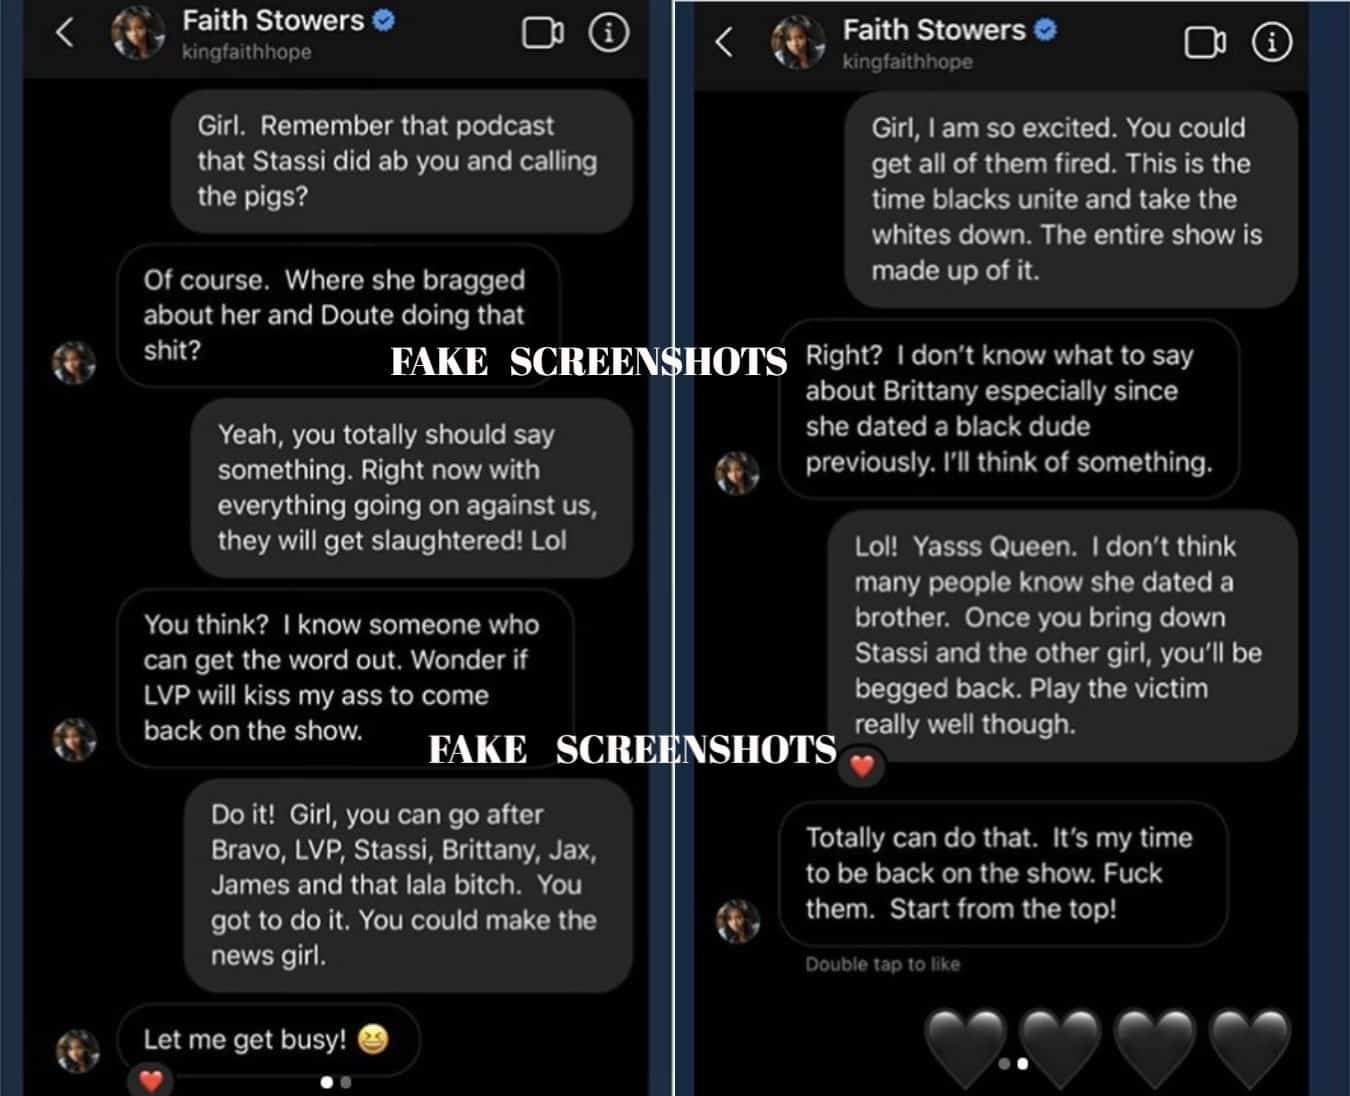 Fake Screenshots of Faith Stowers showing plot to take down Stassi Schroeder